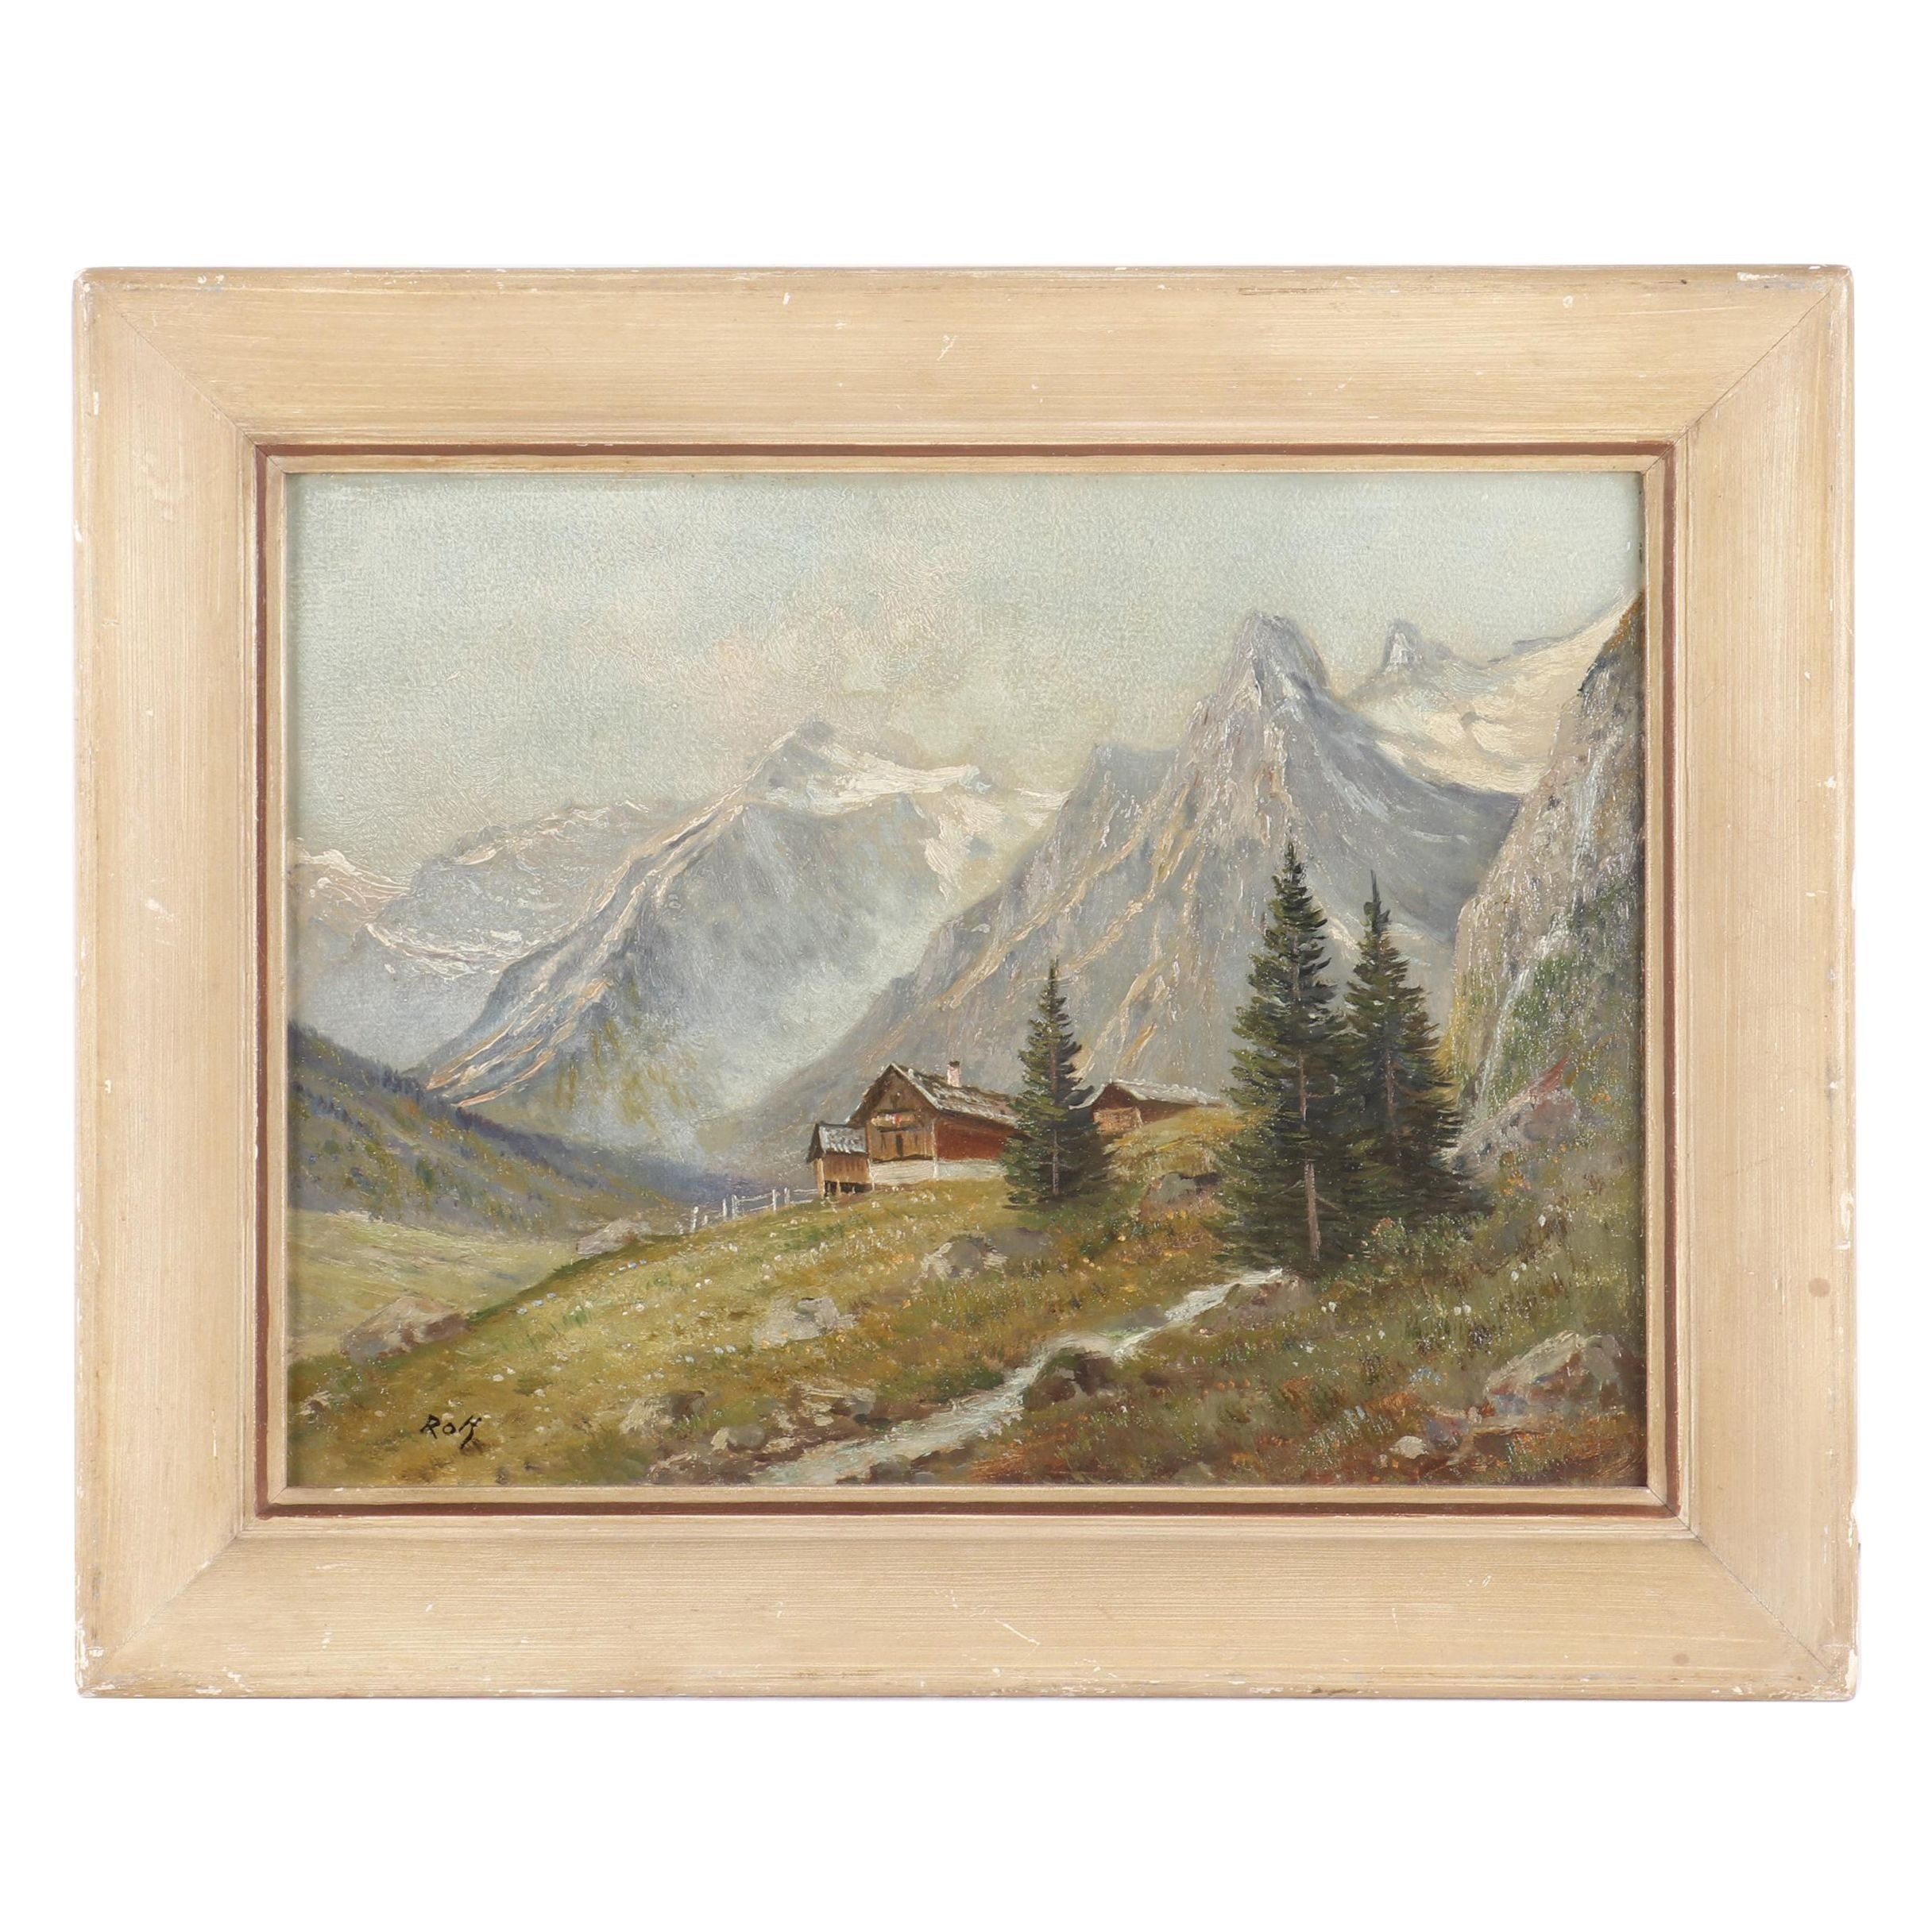 20th Century Oil Painting of House in the Mountains